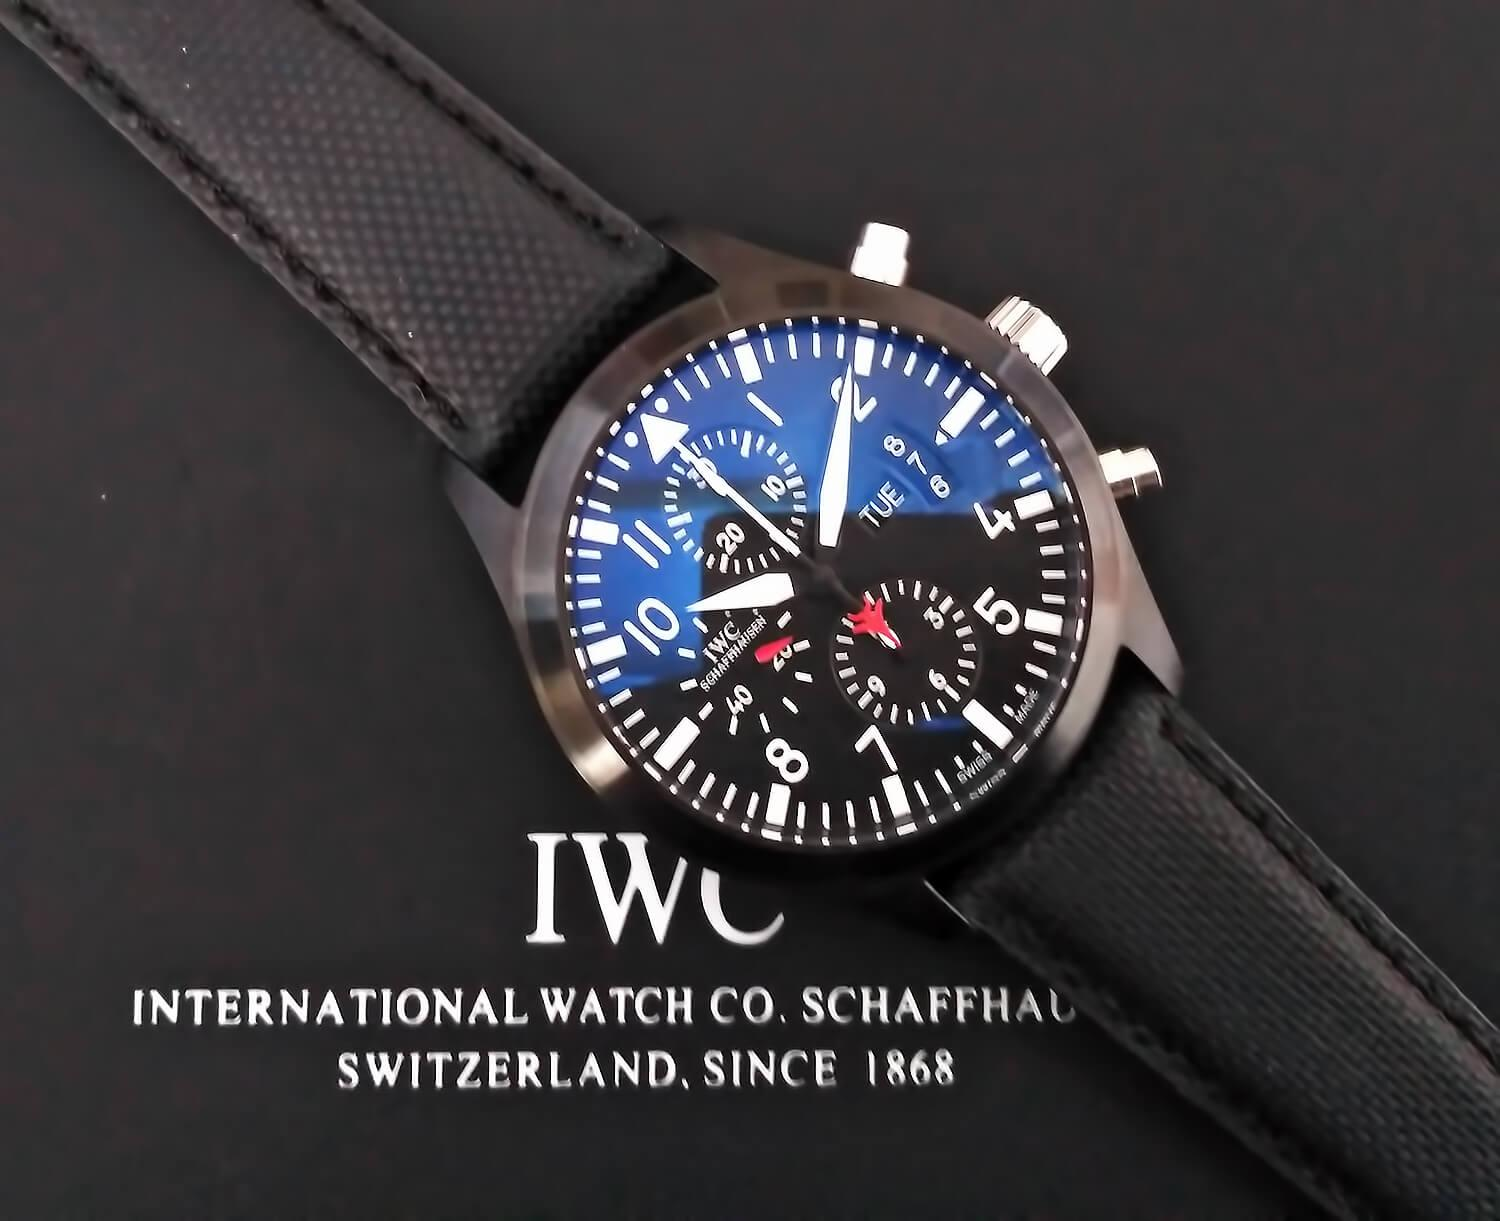 Точная реплика IWC Pilot`s Watch Chronograph Top Gun